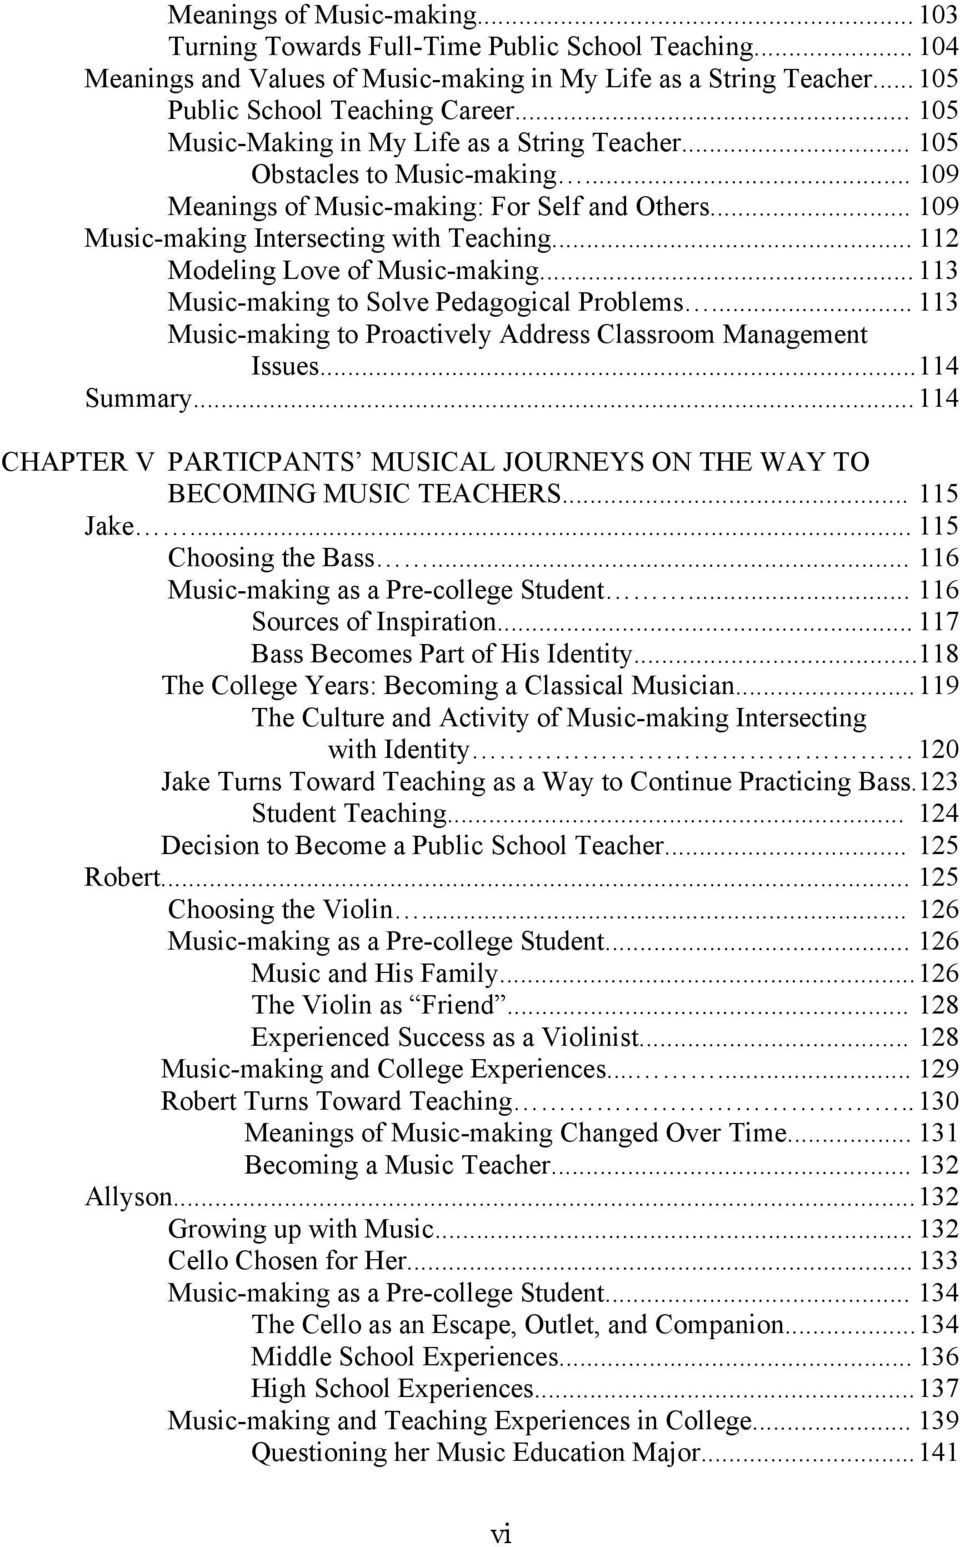 .. 112 Modeling Love of Music-making... 113 Music-making to Solve Pedagogical Problems... 113 Music-making to Proactively Address Classroom Management Issues... 114 Summary.